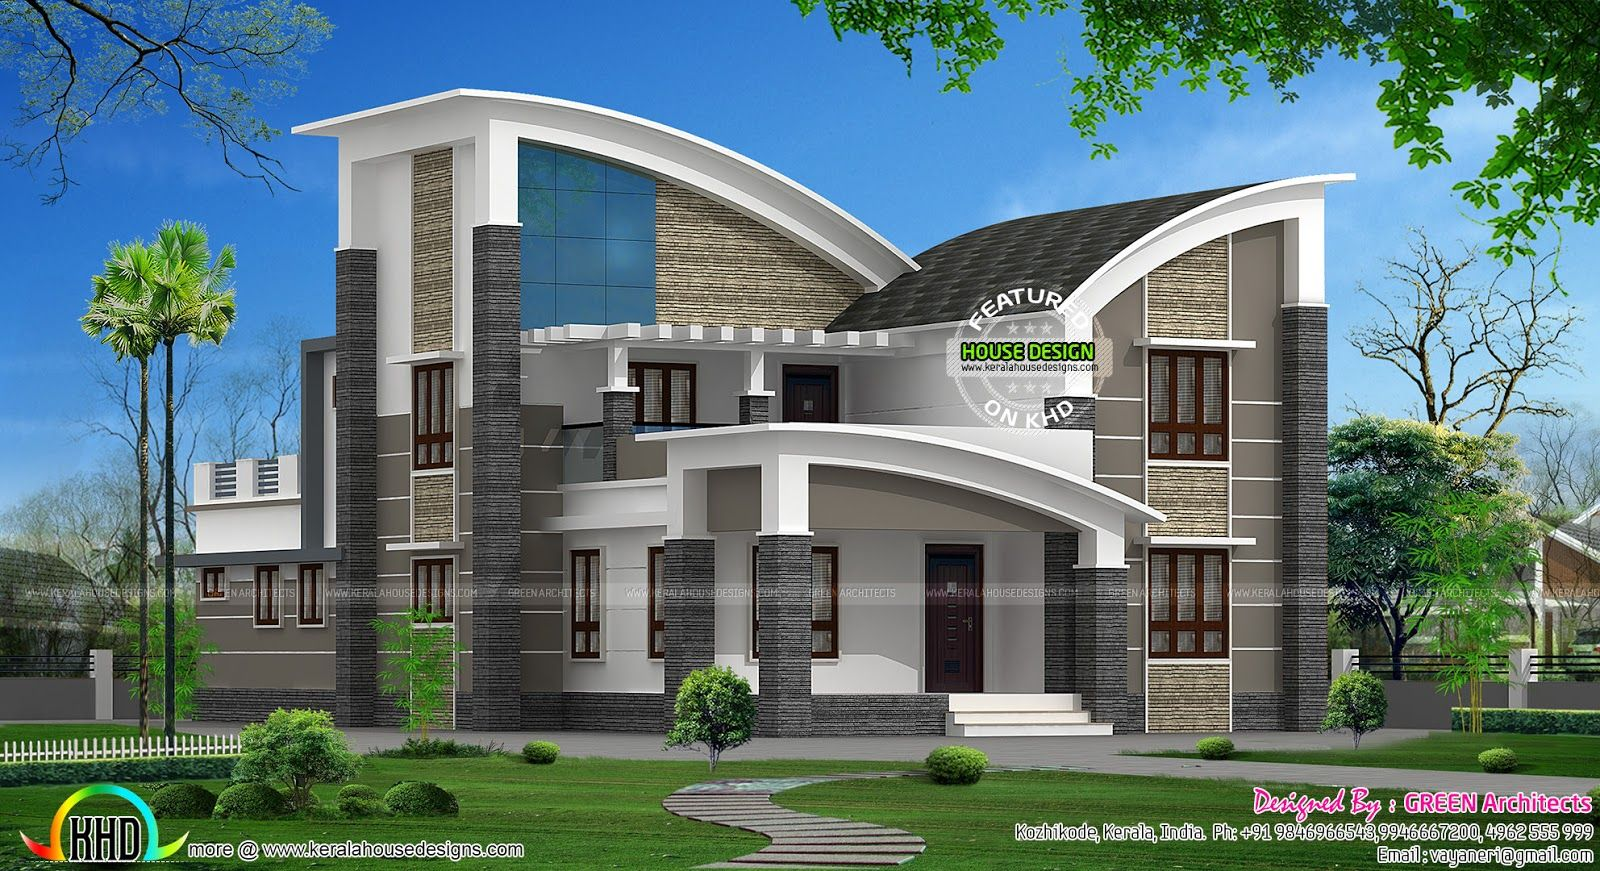 4 Bedroom, Curved Roof Style, Contemporary House Design By Green  Architects, Kozhikode, Kerala.